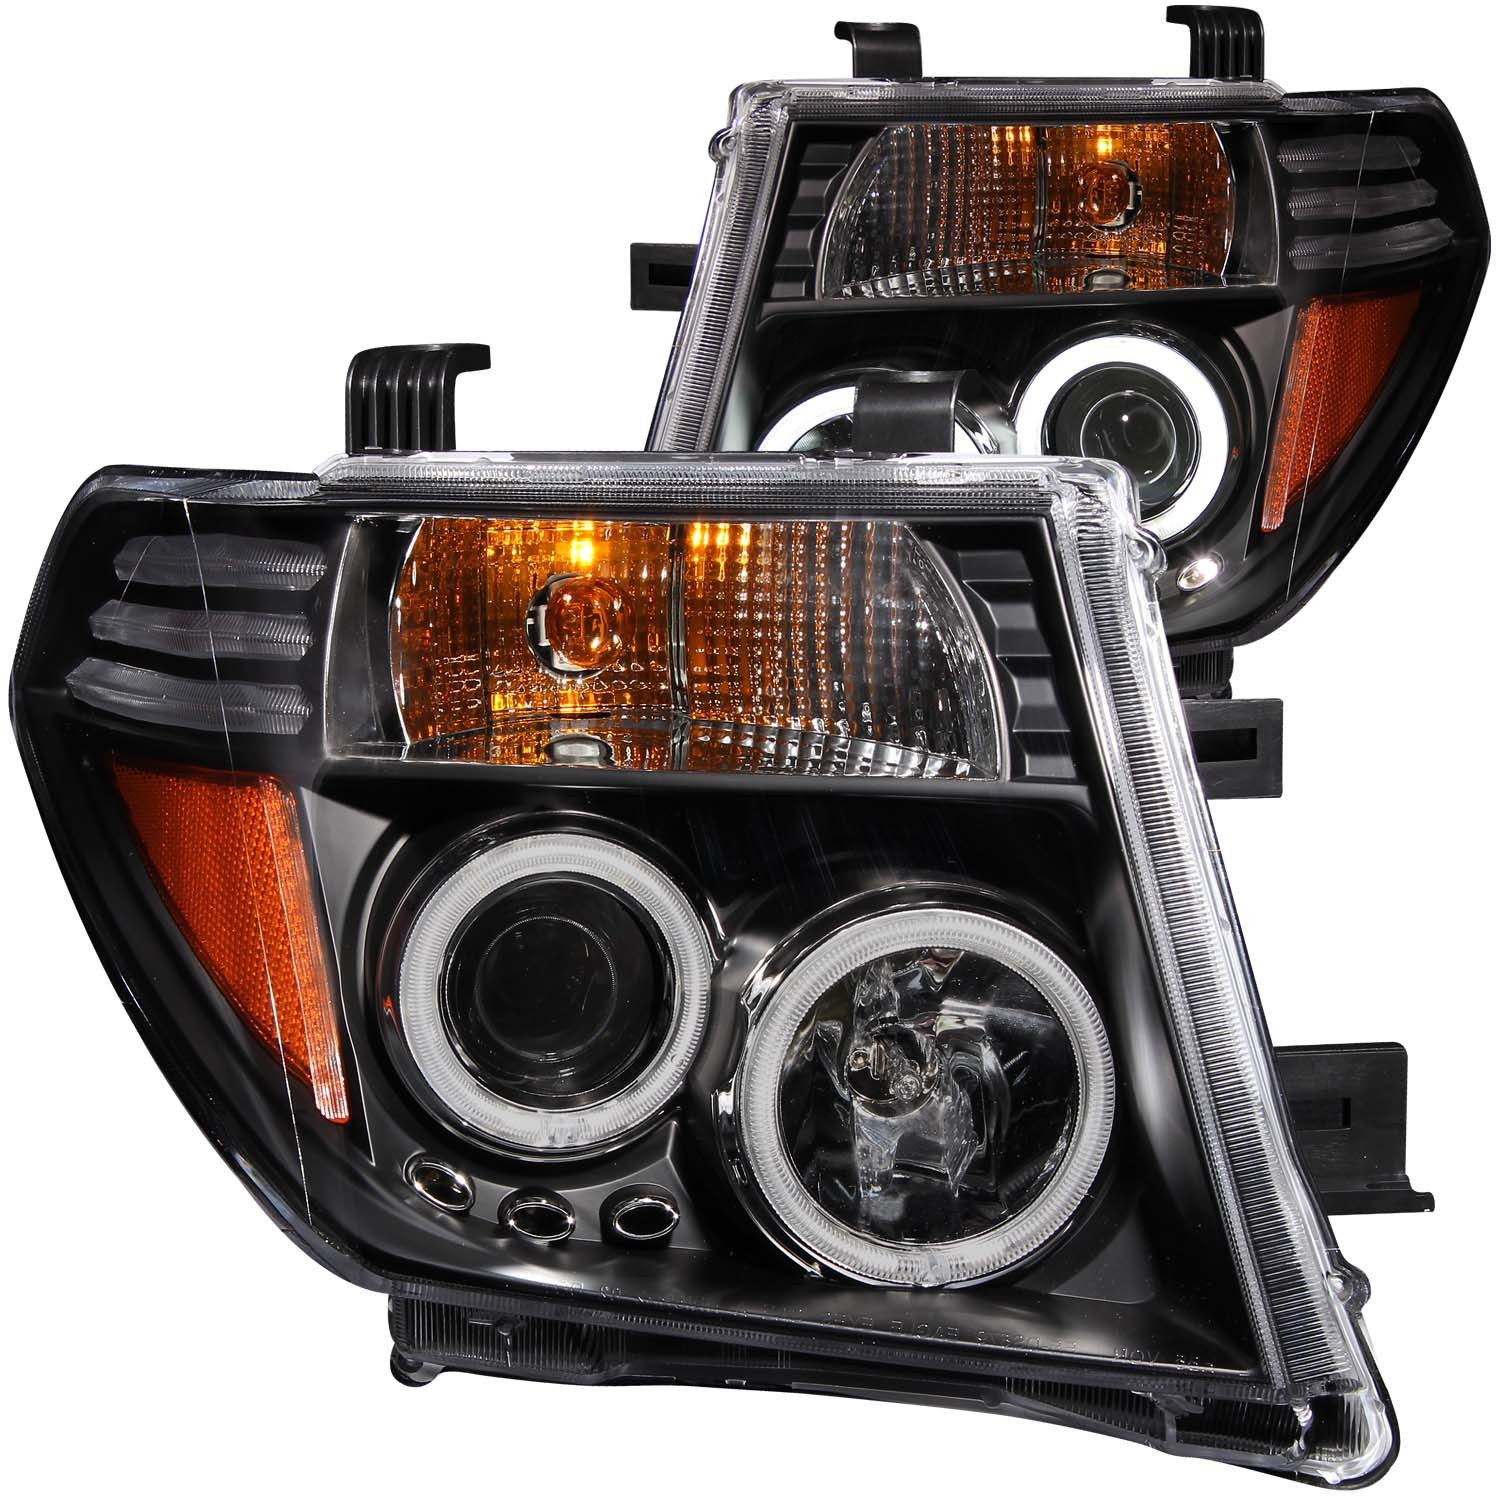 2014 Nissan Quest For Sale >> NISSAN FRONTIER 05-08 / PATHFINDER 05-07 PROJECTOR HEADLIGHTS BLACK CLEAR - Nissan Race Shop